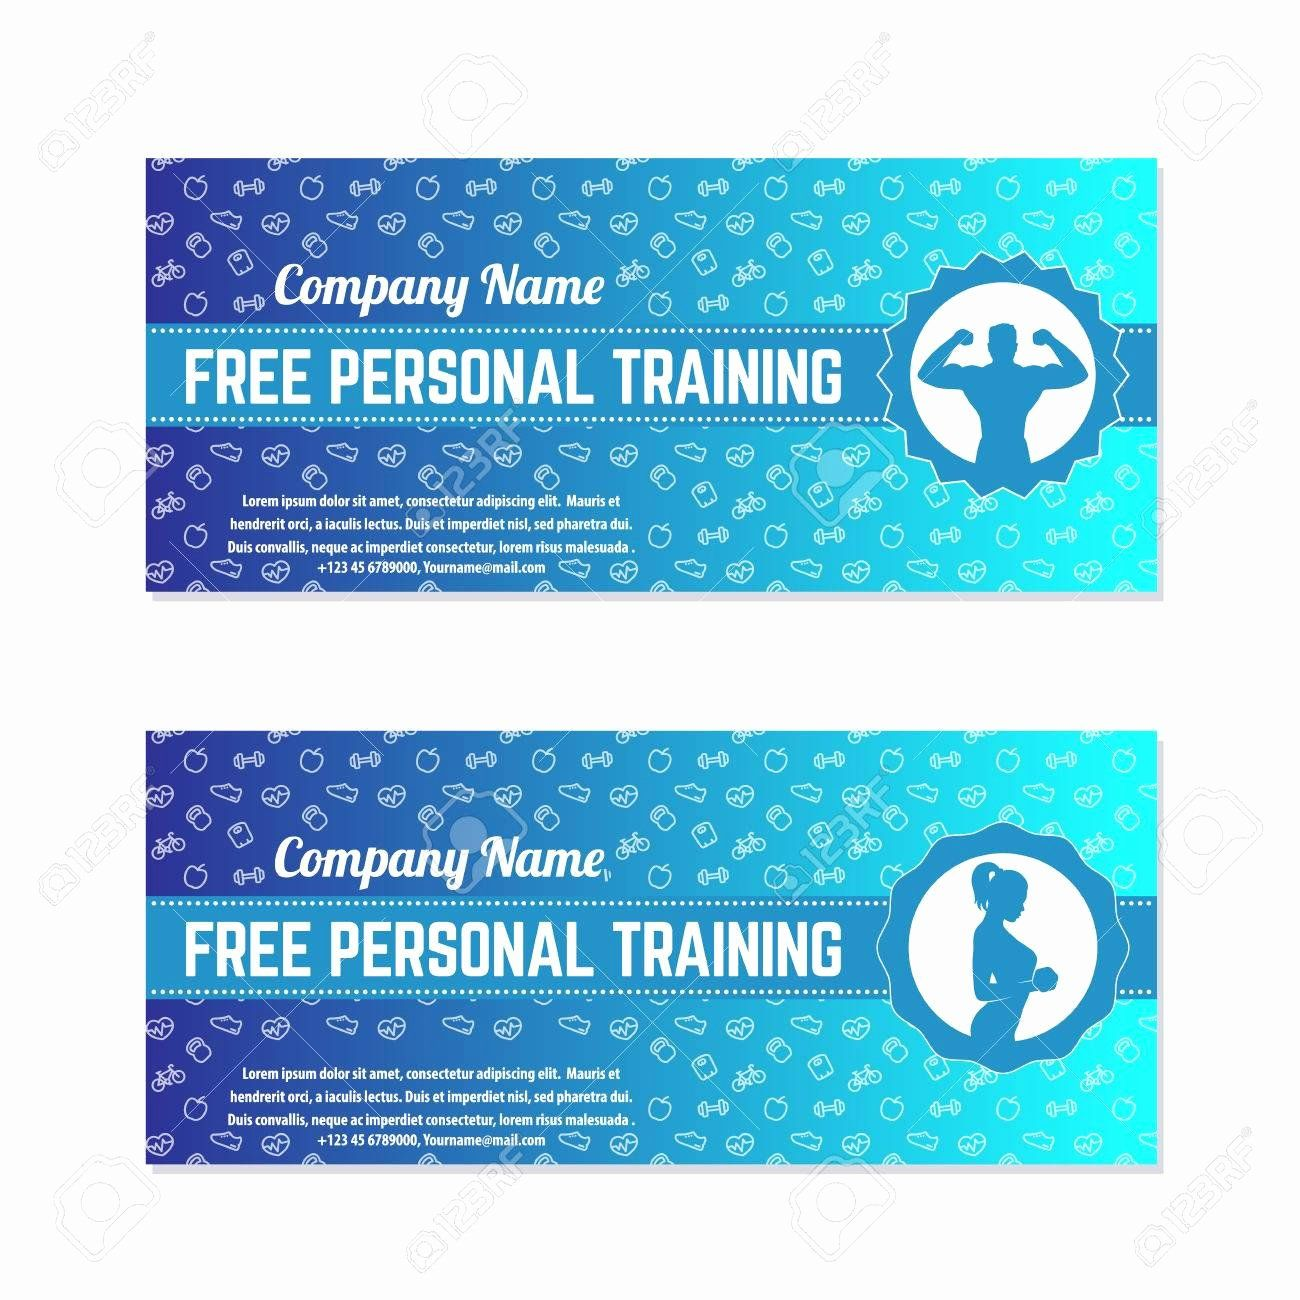 Gift Certificate Template Illustrator Free Beautiful Free Personal Training T Voucher For Gy Gift Certificate Template Gift Card Template Certificate Templates